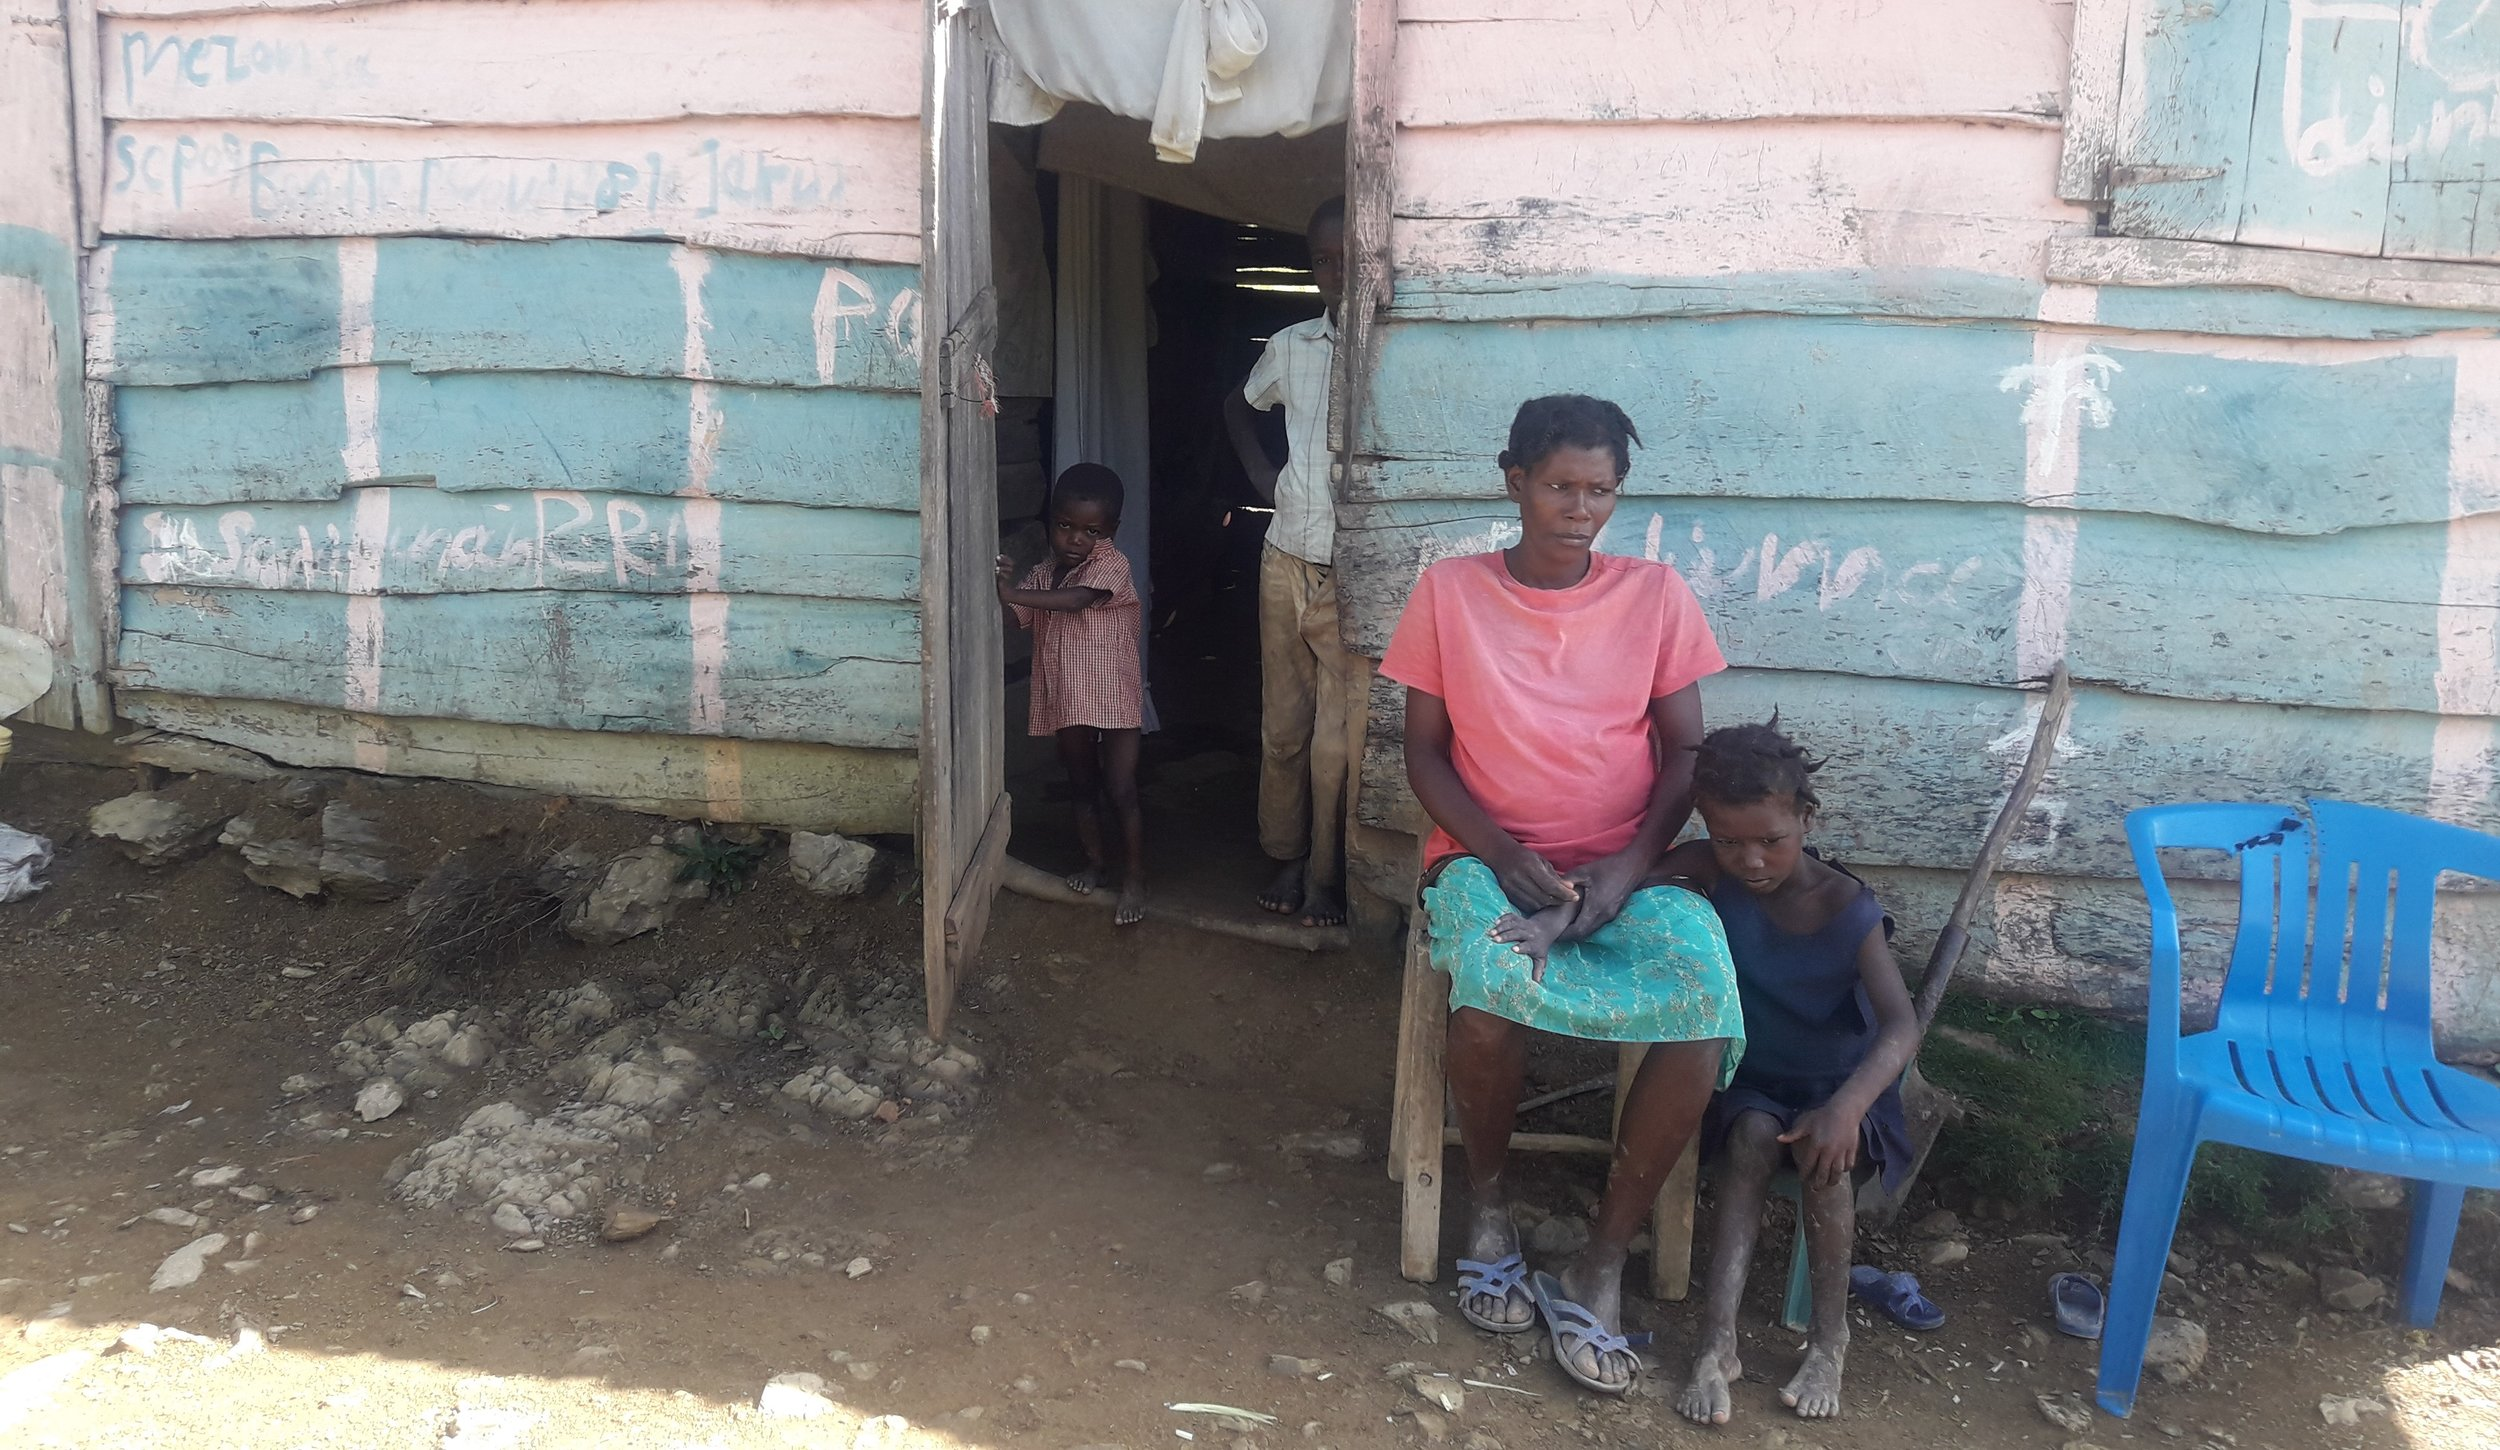 Children living in Lagua are at greatest risk.